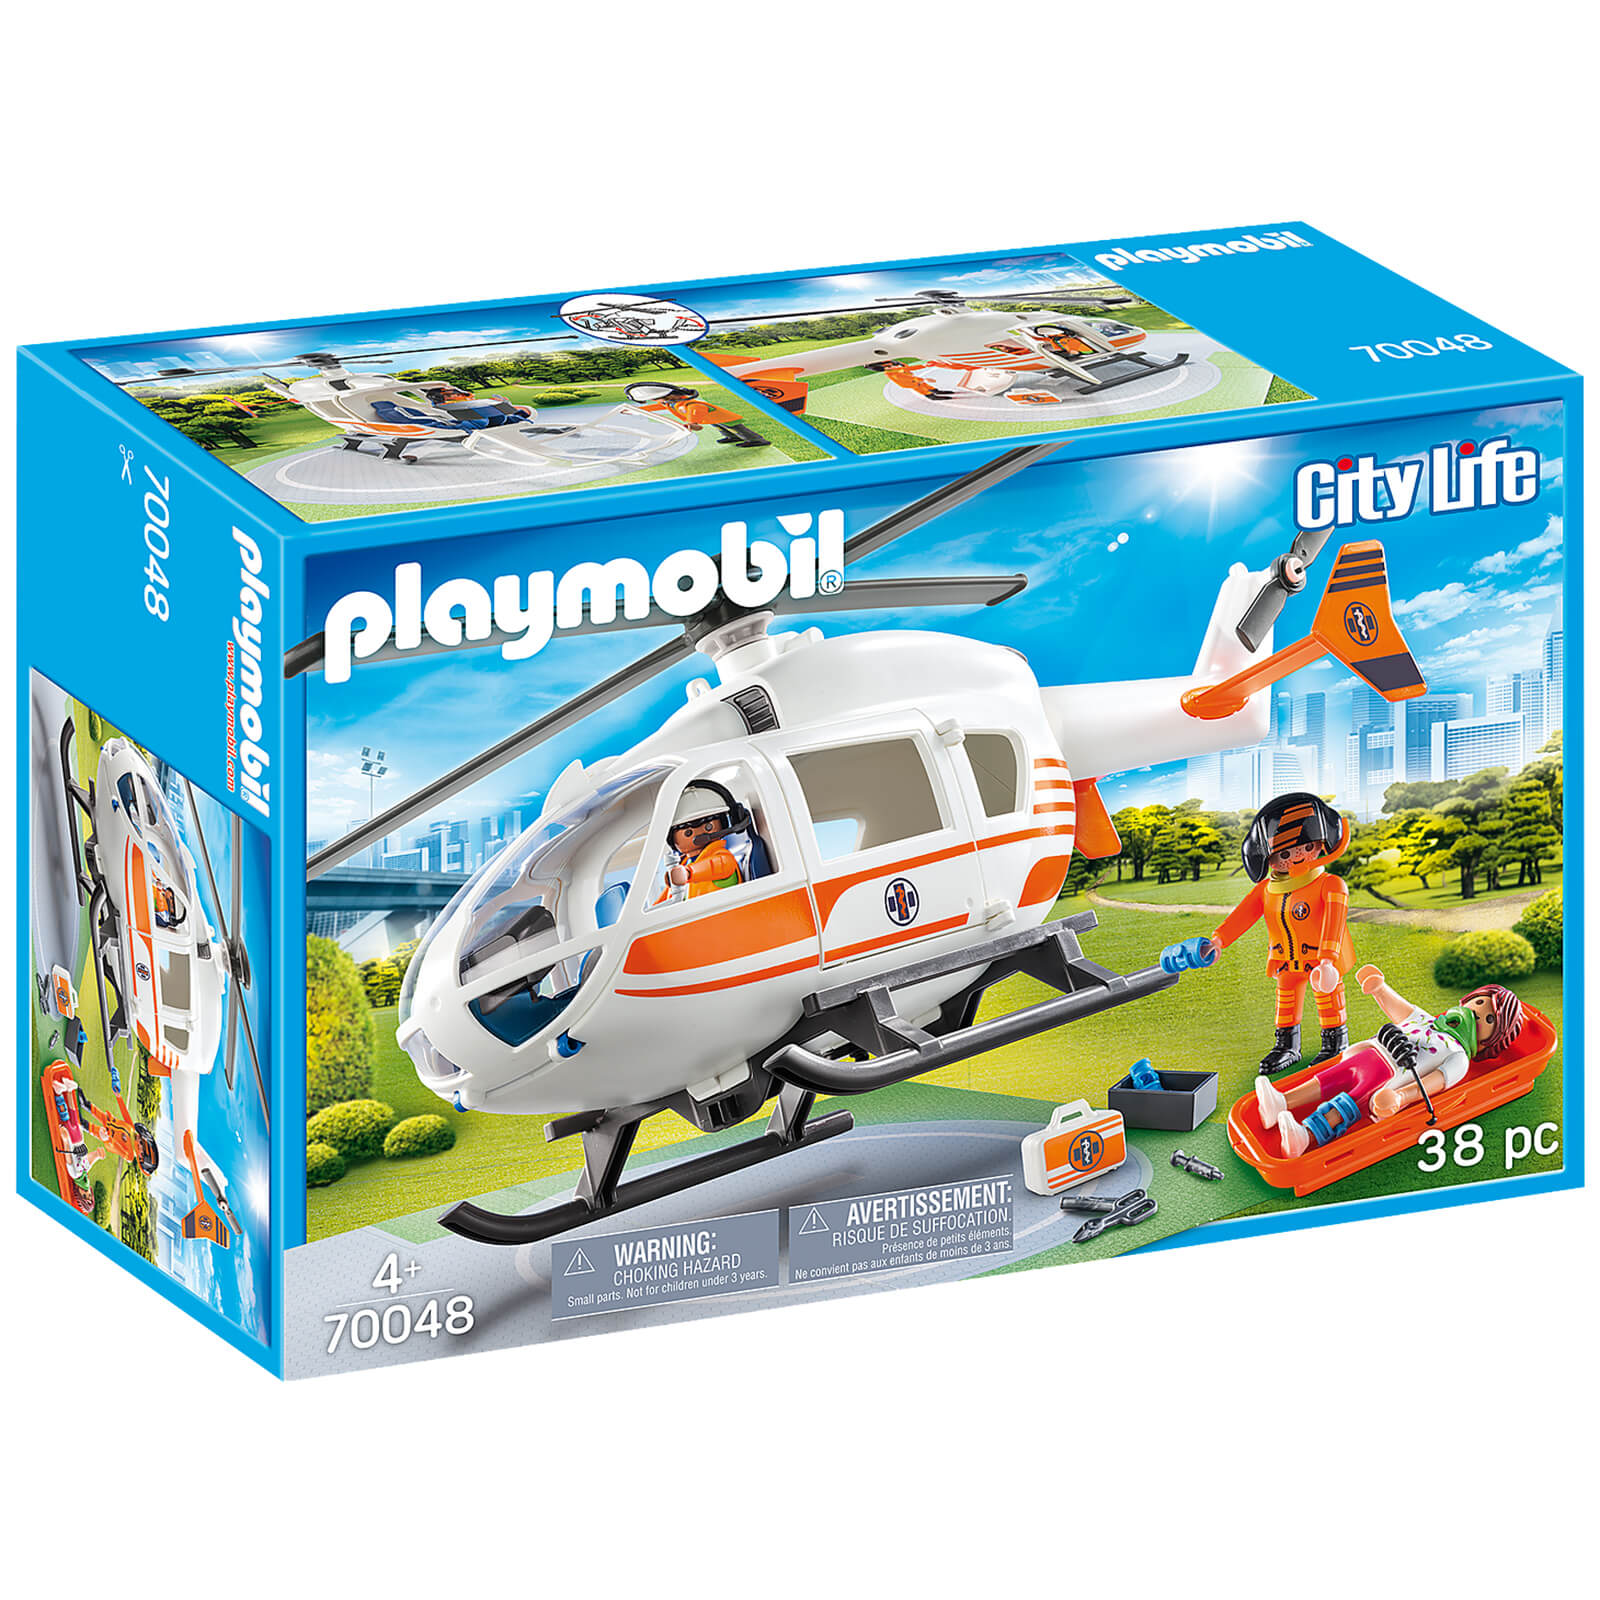 Playmobil City Life Rescue Helicopter (70048)